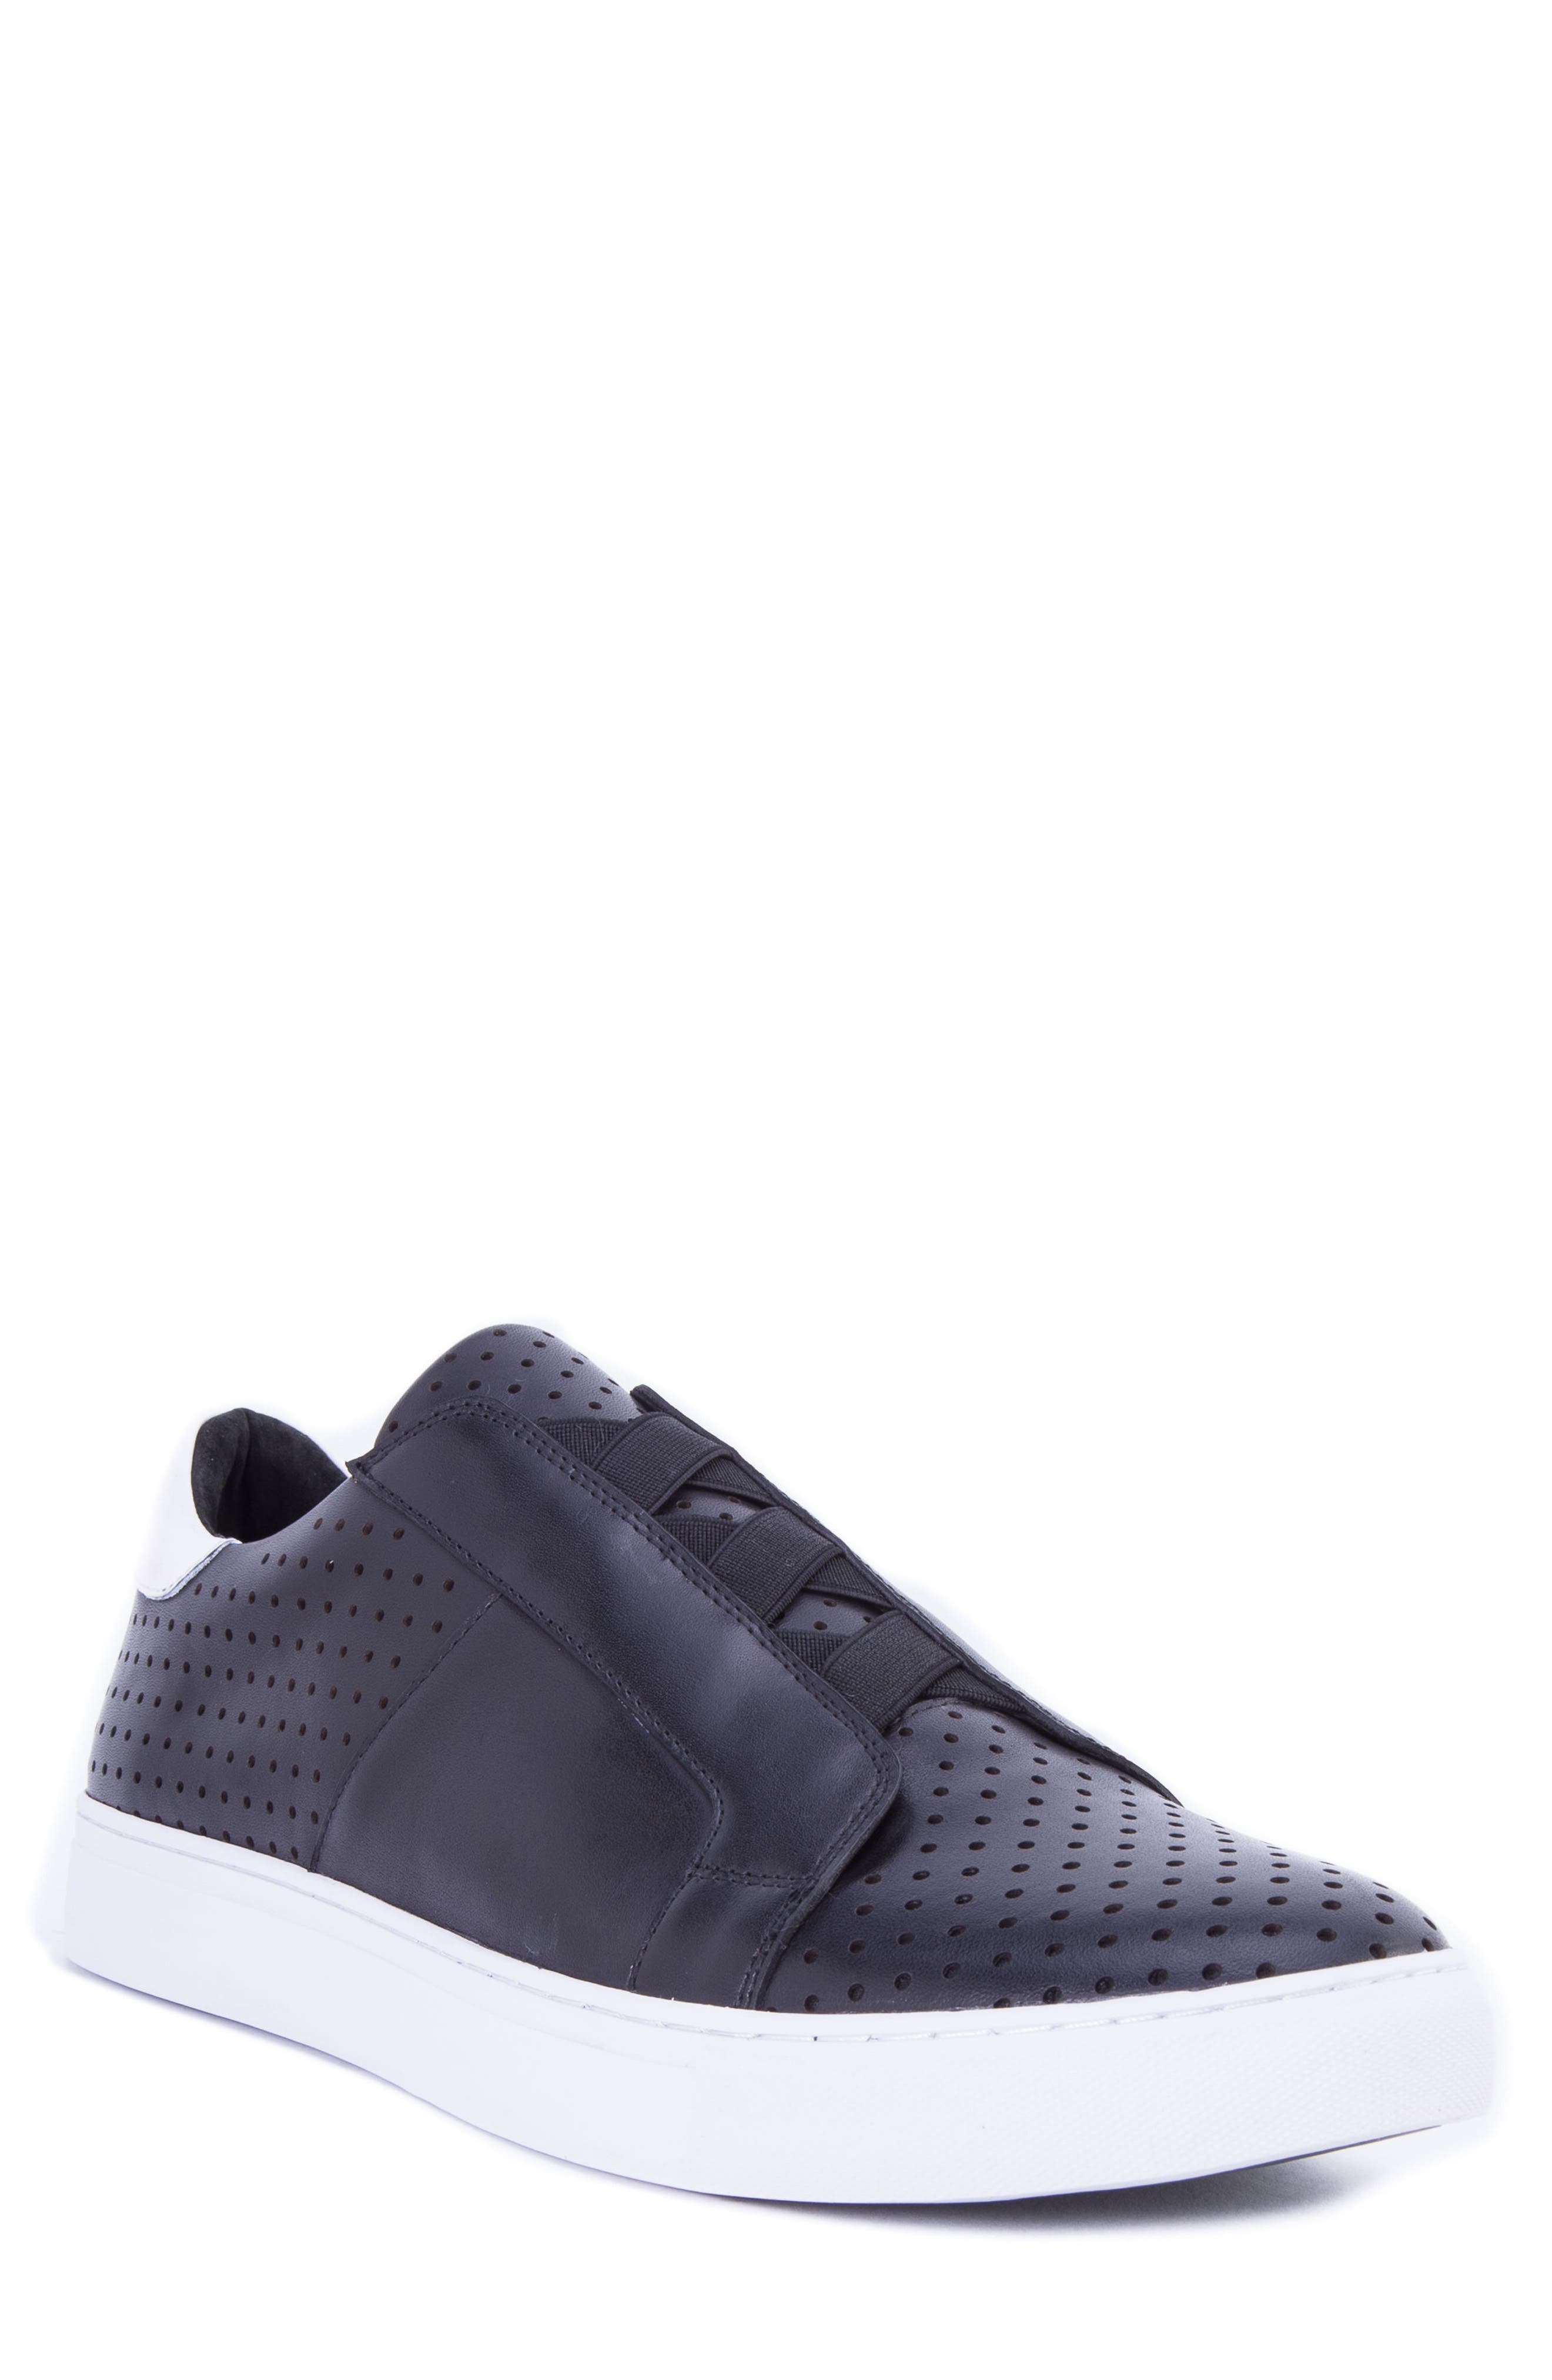 Rowley Perforated Laceless Sneaker,                             Main thumbnail 1, color,                             BLACK LEATHER